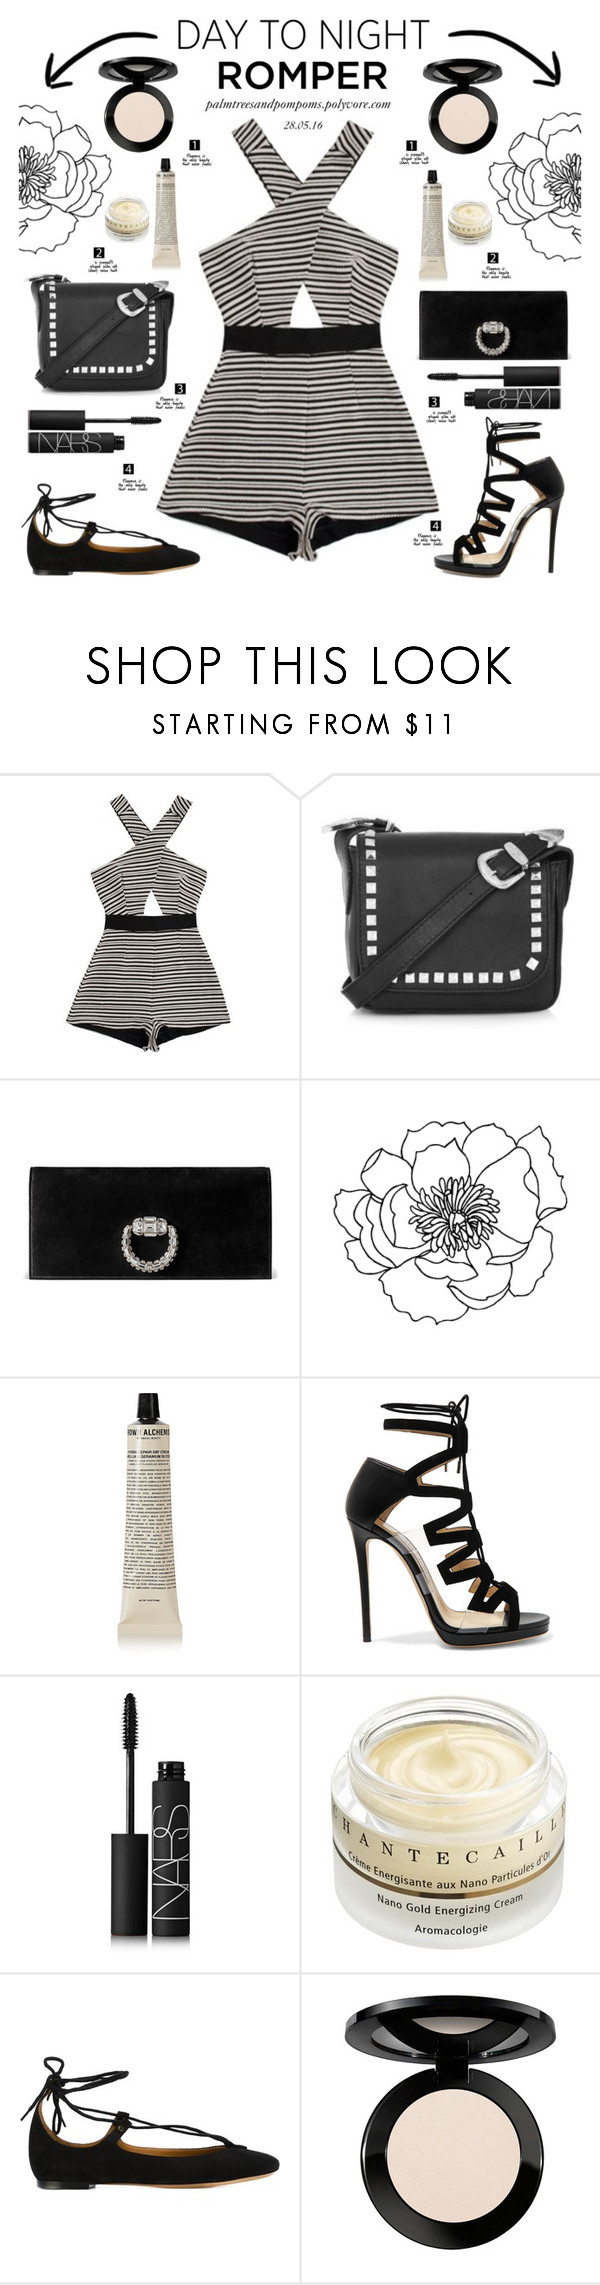 """""""Day to Night: Rompers"""" by palmtreesandpompoms ❤ liked on Polyvore featuring Alice McCall, Topshop, Gucci, Grown Alchemist, Jimmy Choo, NARS Cosmetics, Chantecaille, Chloé, Vincent Longo and DayToNight"""